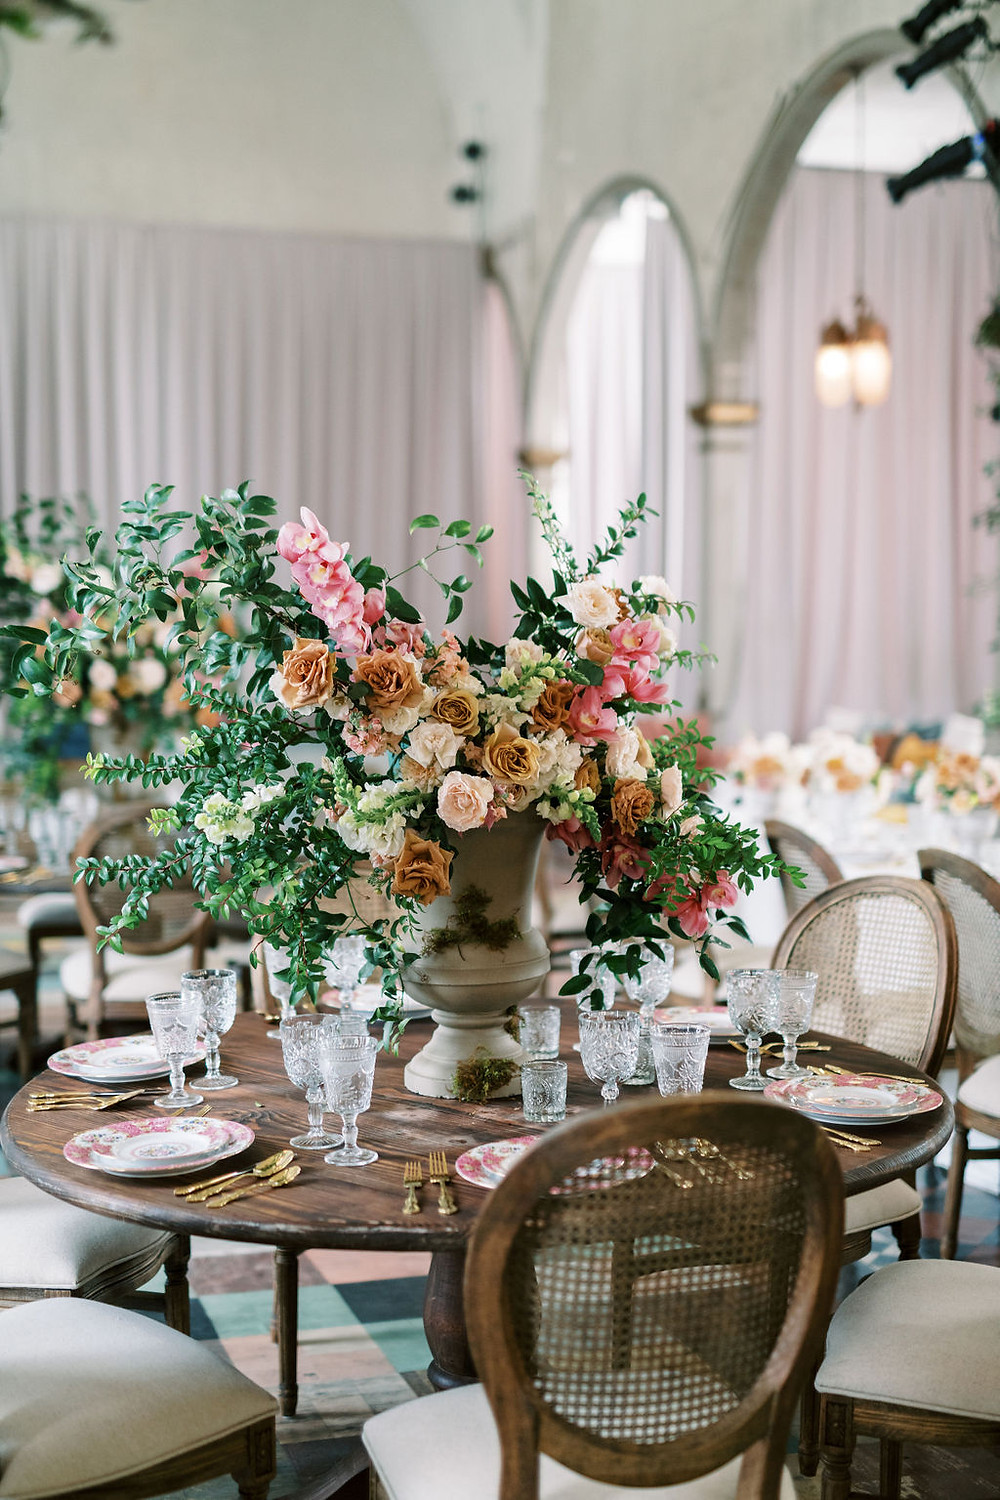 Seated Dinner for Bridgerton Inspired Wedding at the Marigny Opera House in New Orleans with Decor and Vintage Furniture by Lovegood Rentals Featuring Caned Louis Chairs, Mahogany Round Tables and Overgrown Florals